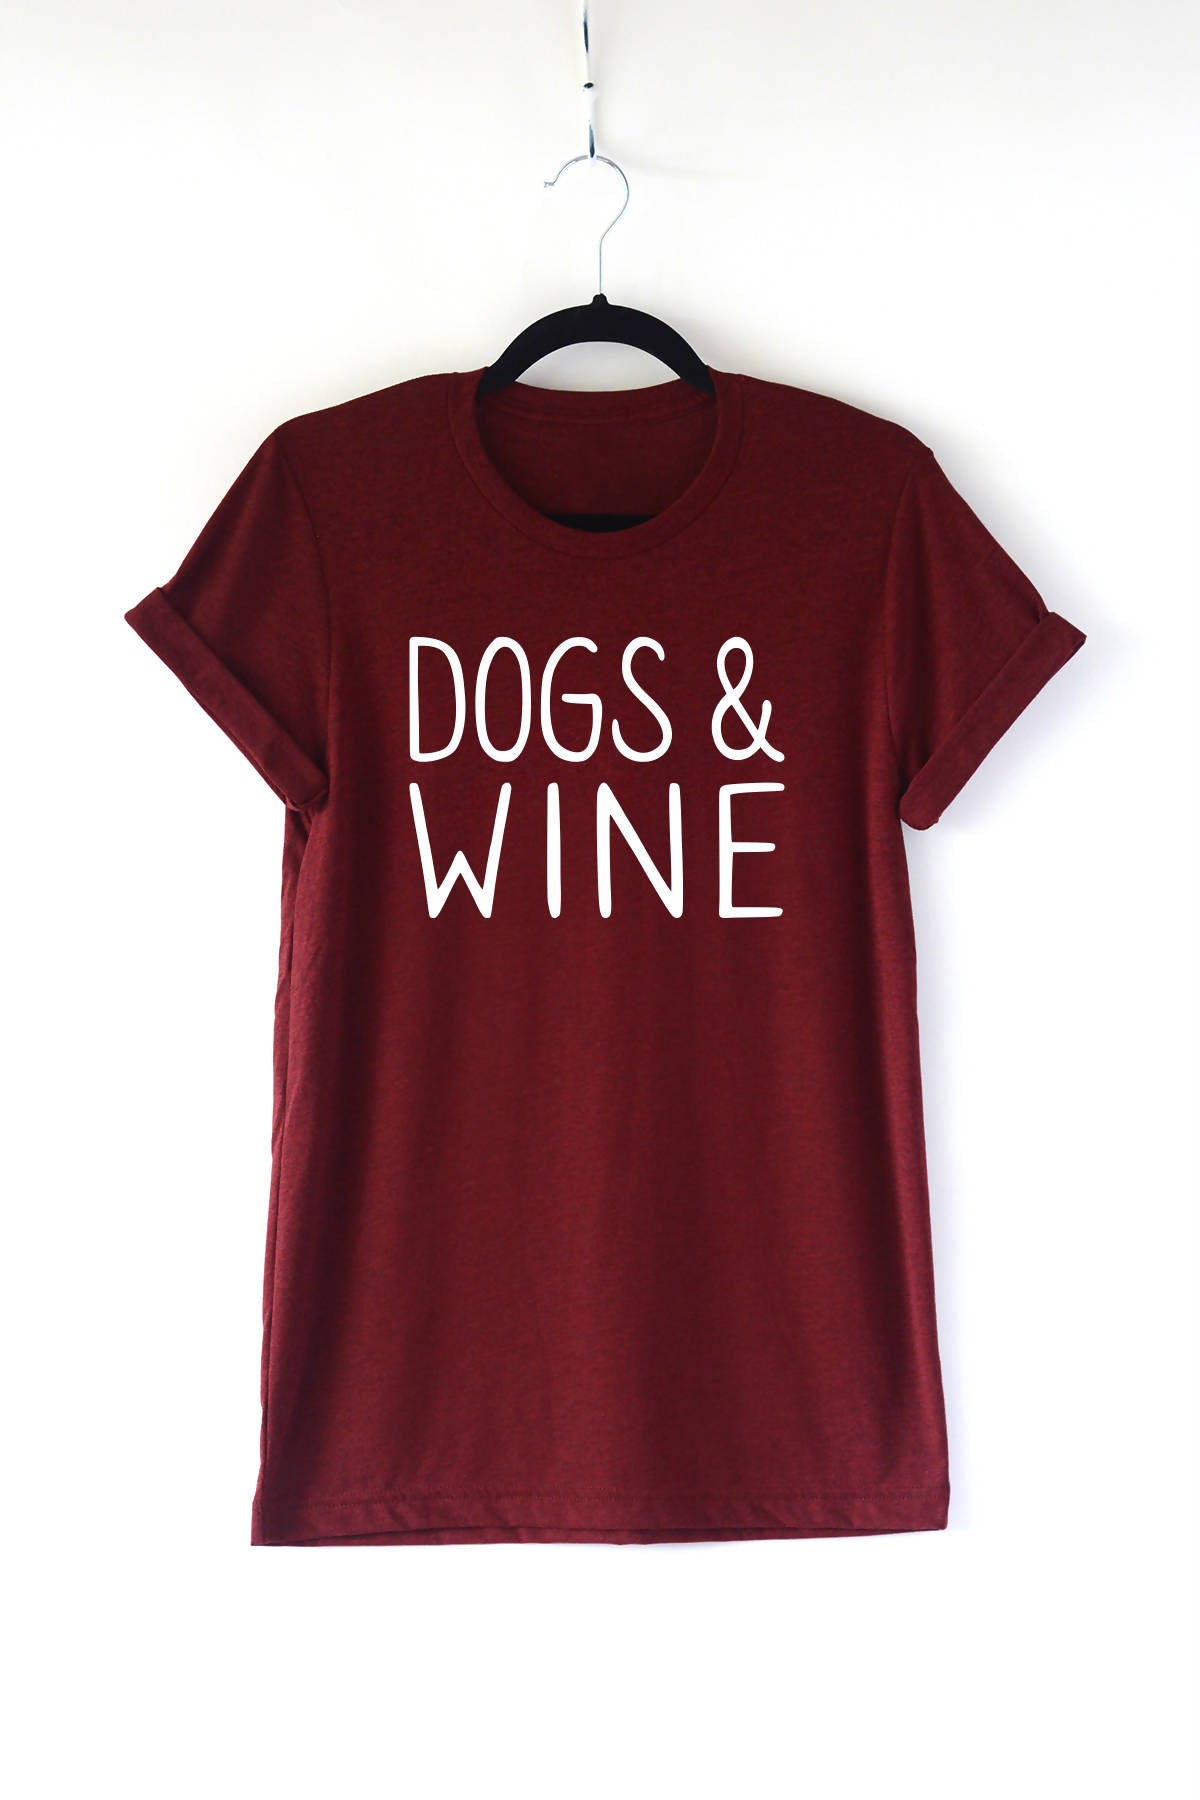 Dogs and Wine Adult Crewneck Tee